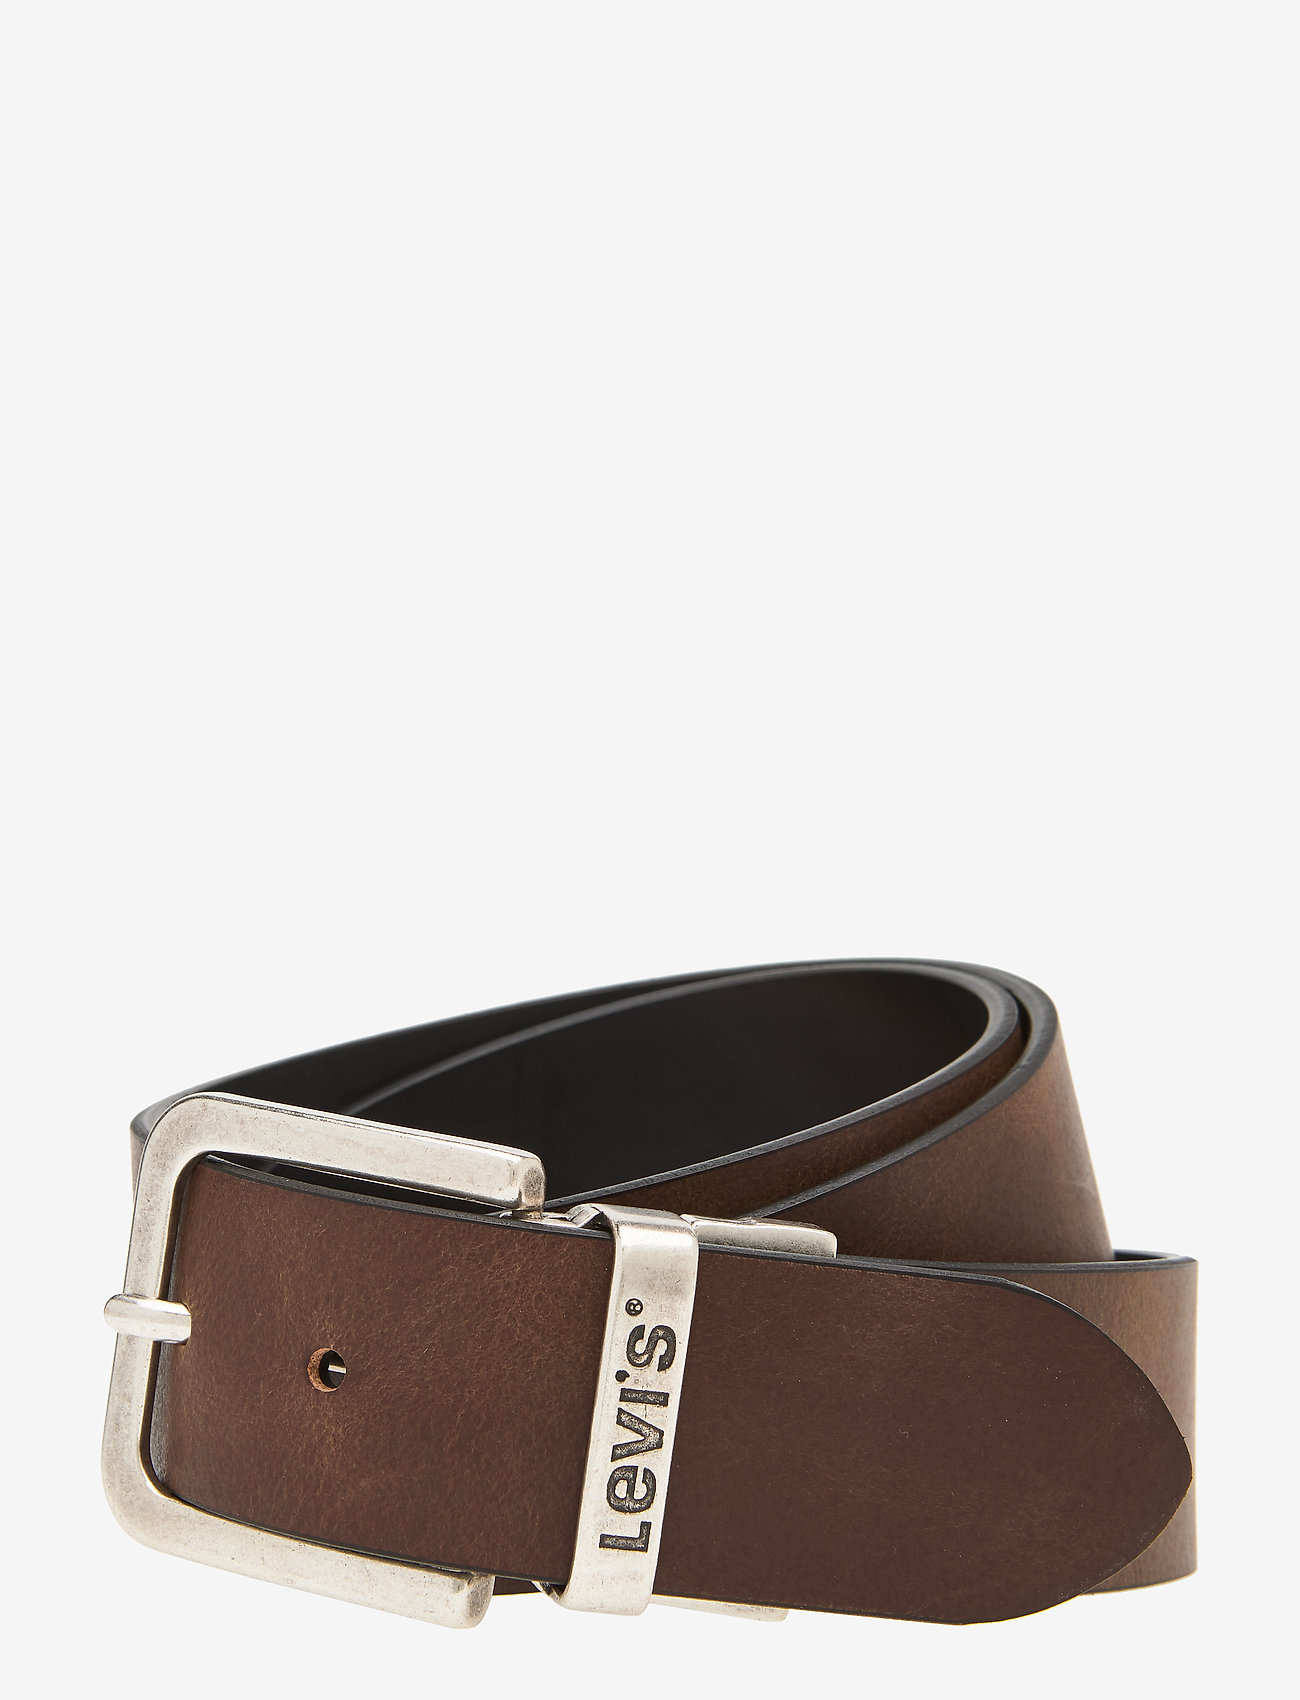 Levi's Footwear & Acc - REVERSIBLE CORE - belts - brown - 0